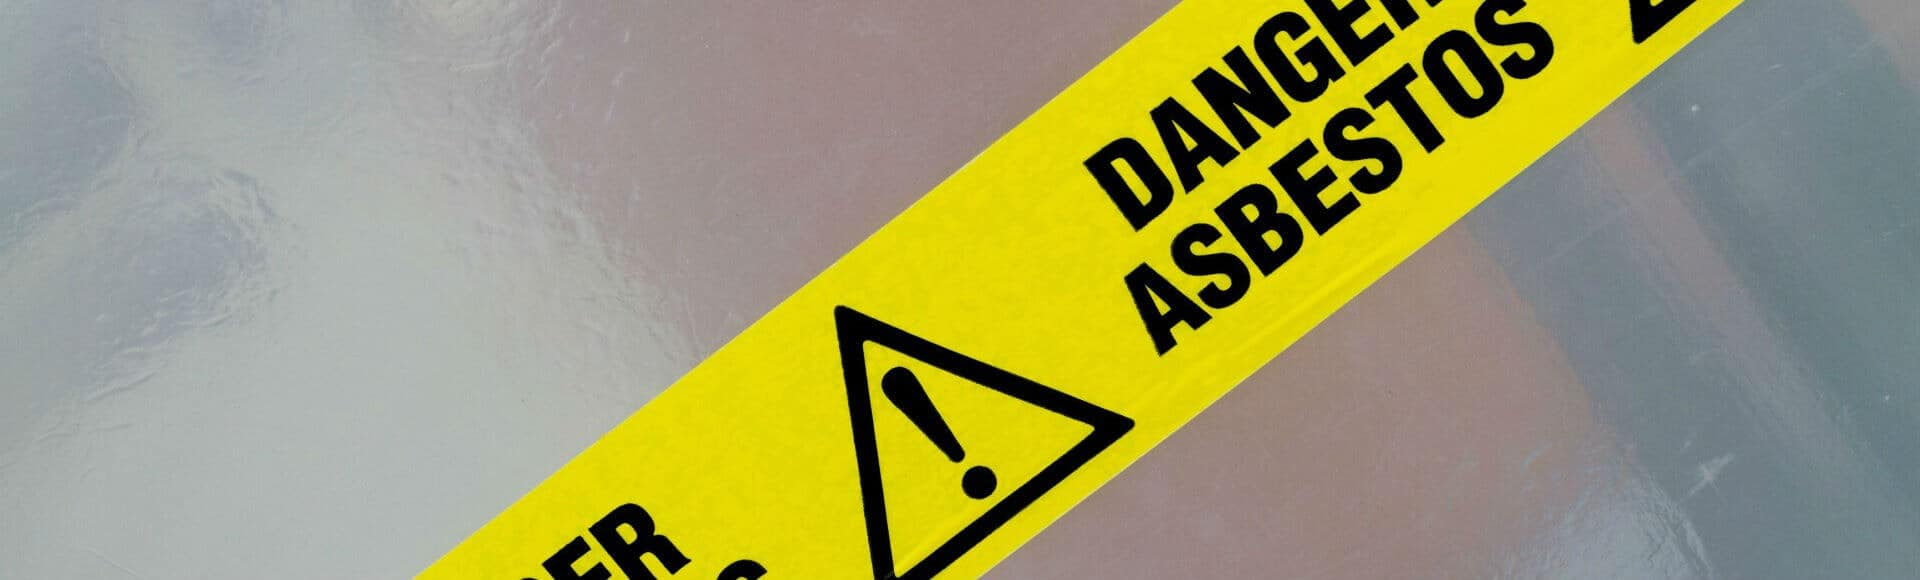 Danger Asbestos yellow warning tape close up